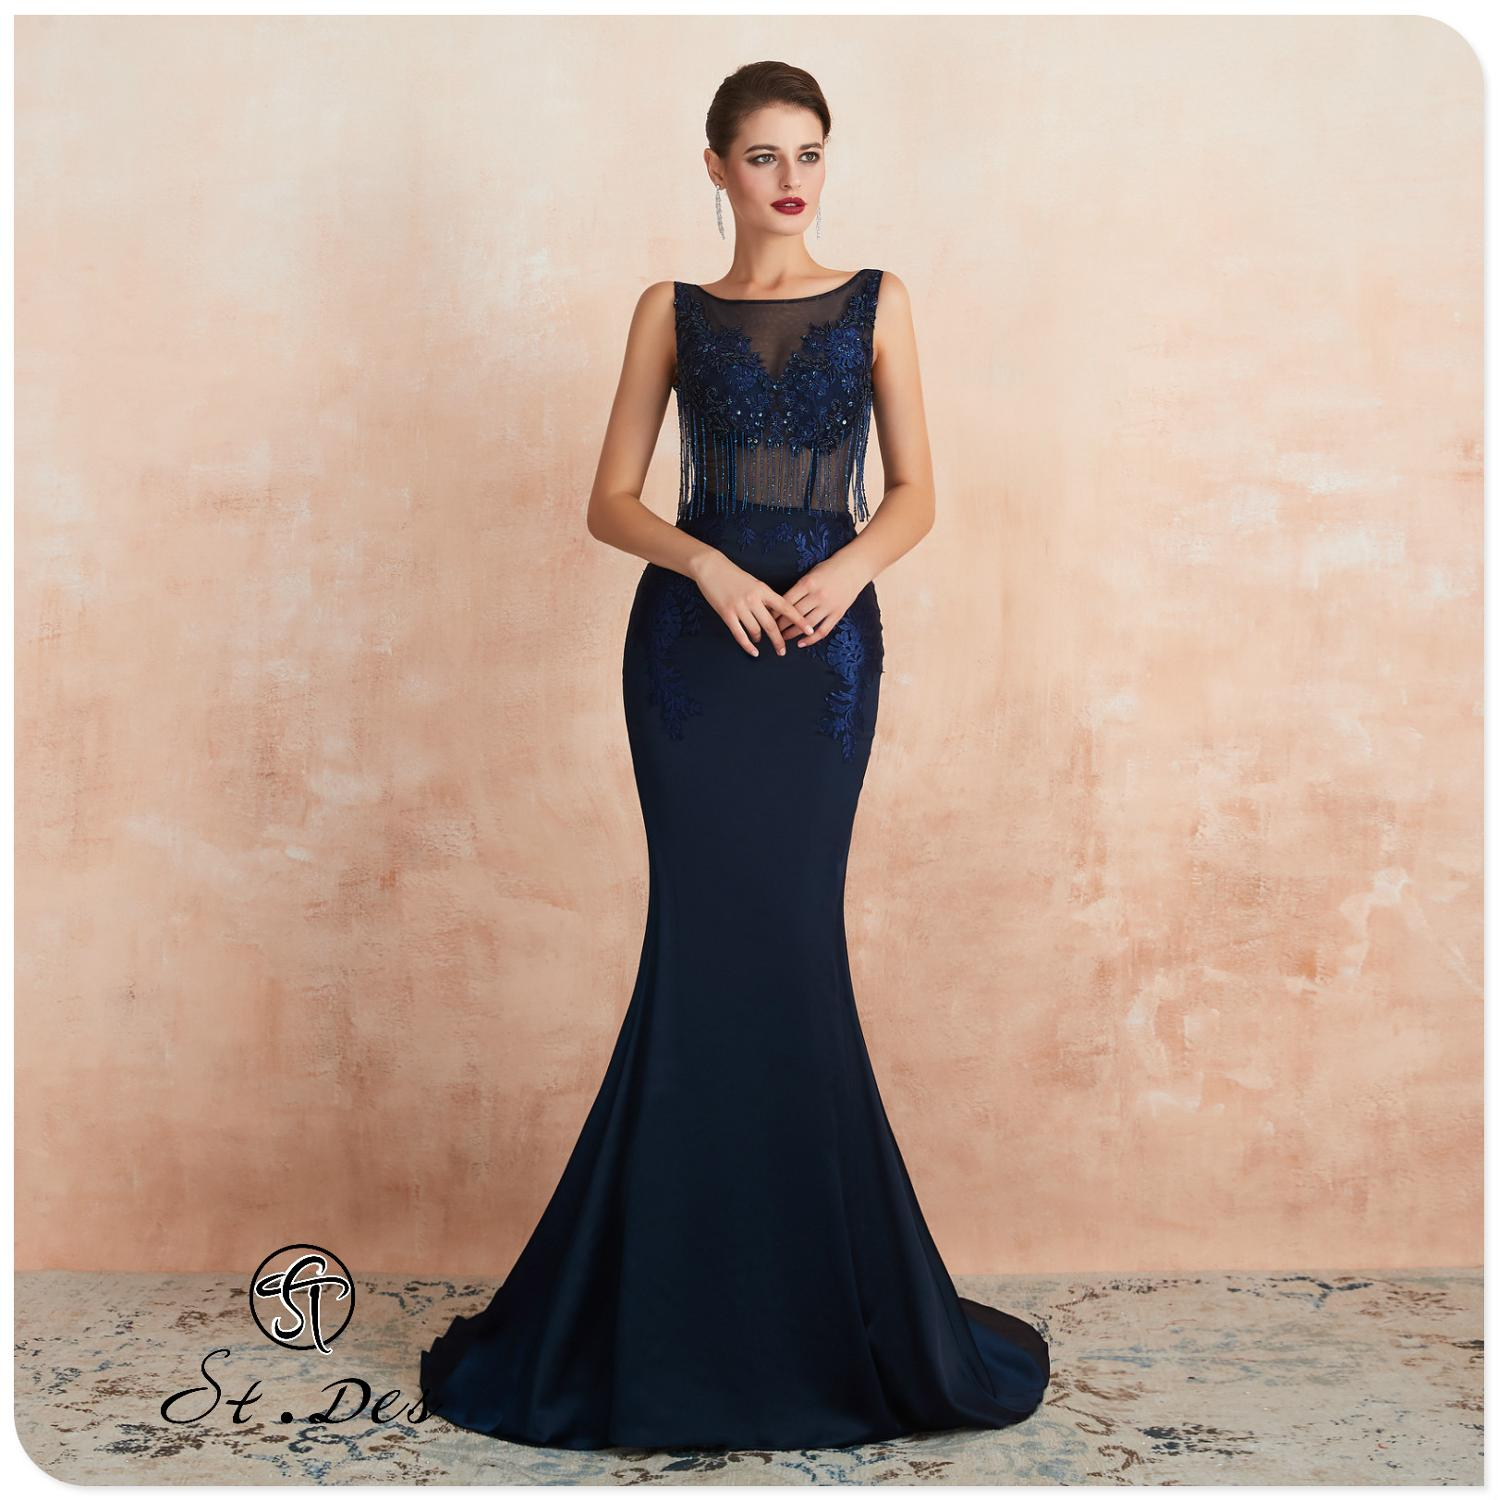 NEW 2020 St.Des Mermaid V-neck Russian Dark Blue Sequins Beading Sleeveless Elegant Floor Length Evening Dress Party Dress